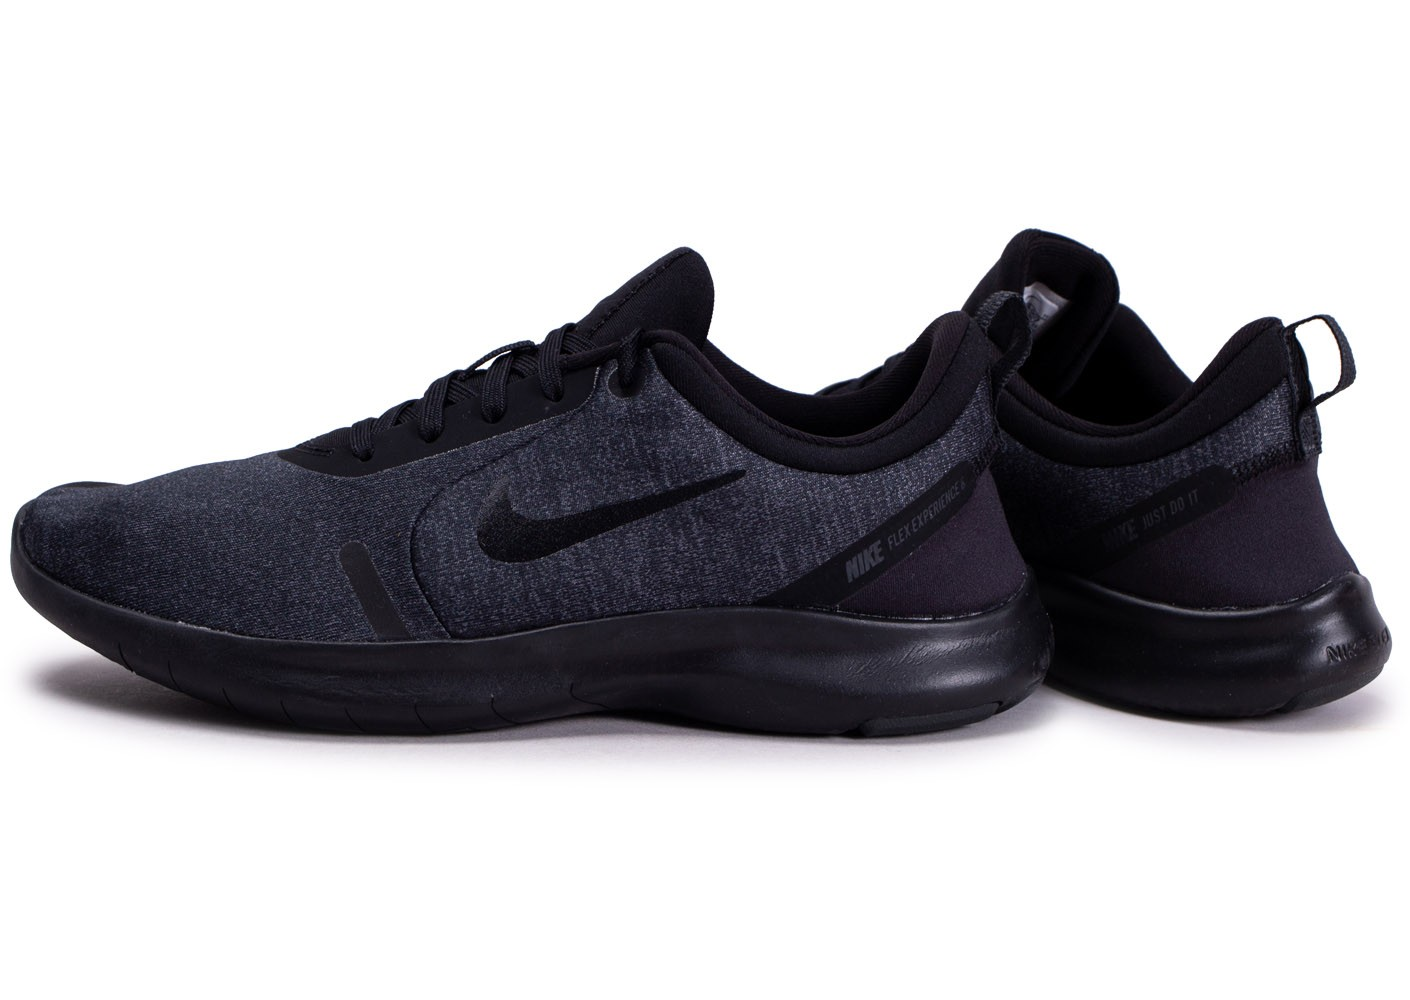 Nike Flex Experience RN 8 noire anthracite Chaussures